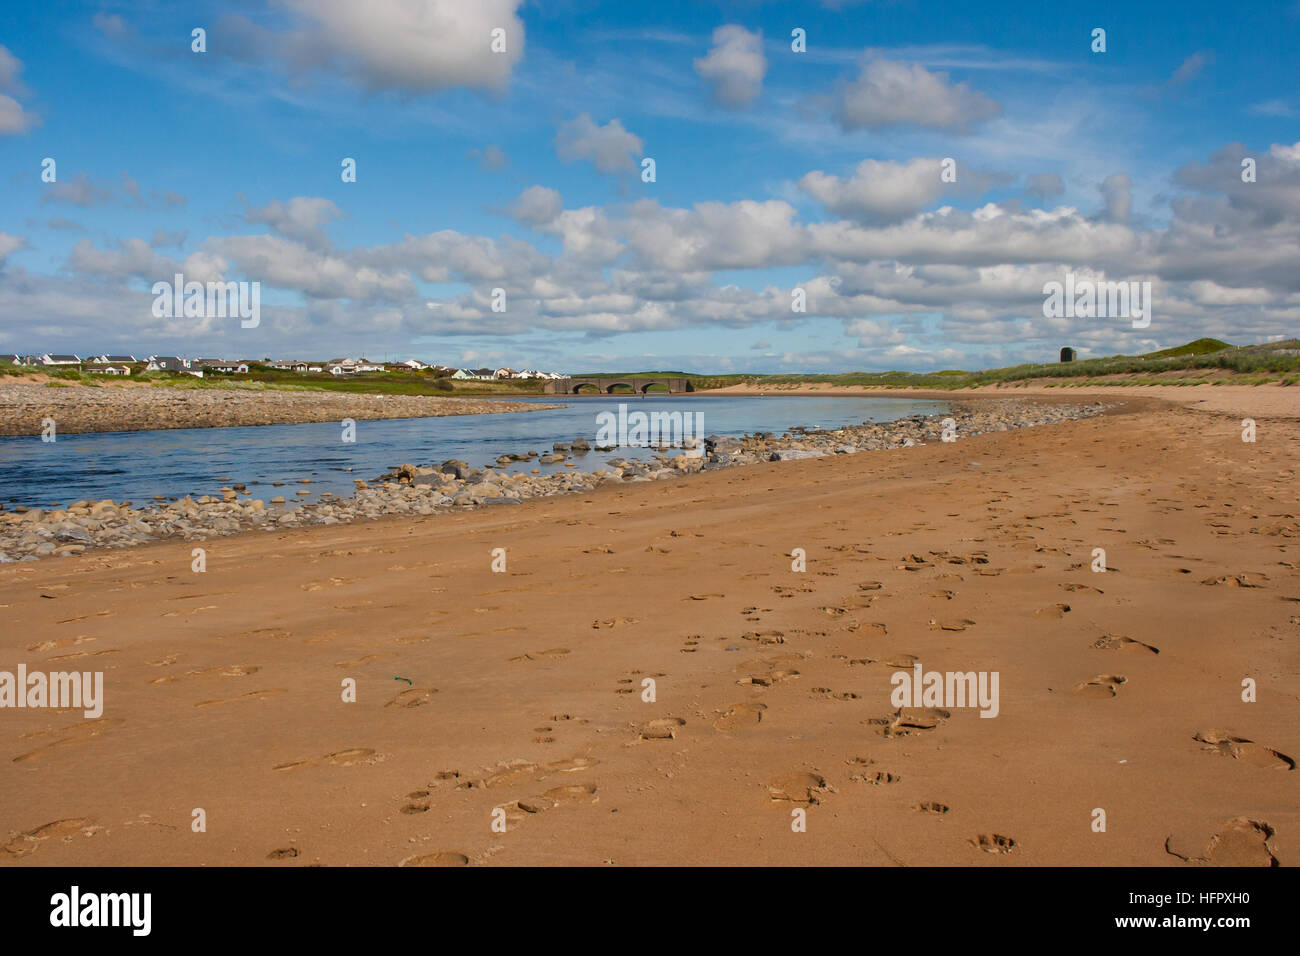 Sandy beach with rocks on the west coast of Ireland with a small river running into the Atlantic ocean at low tide. - Stock Image